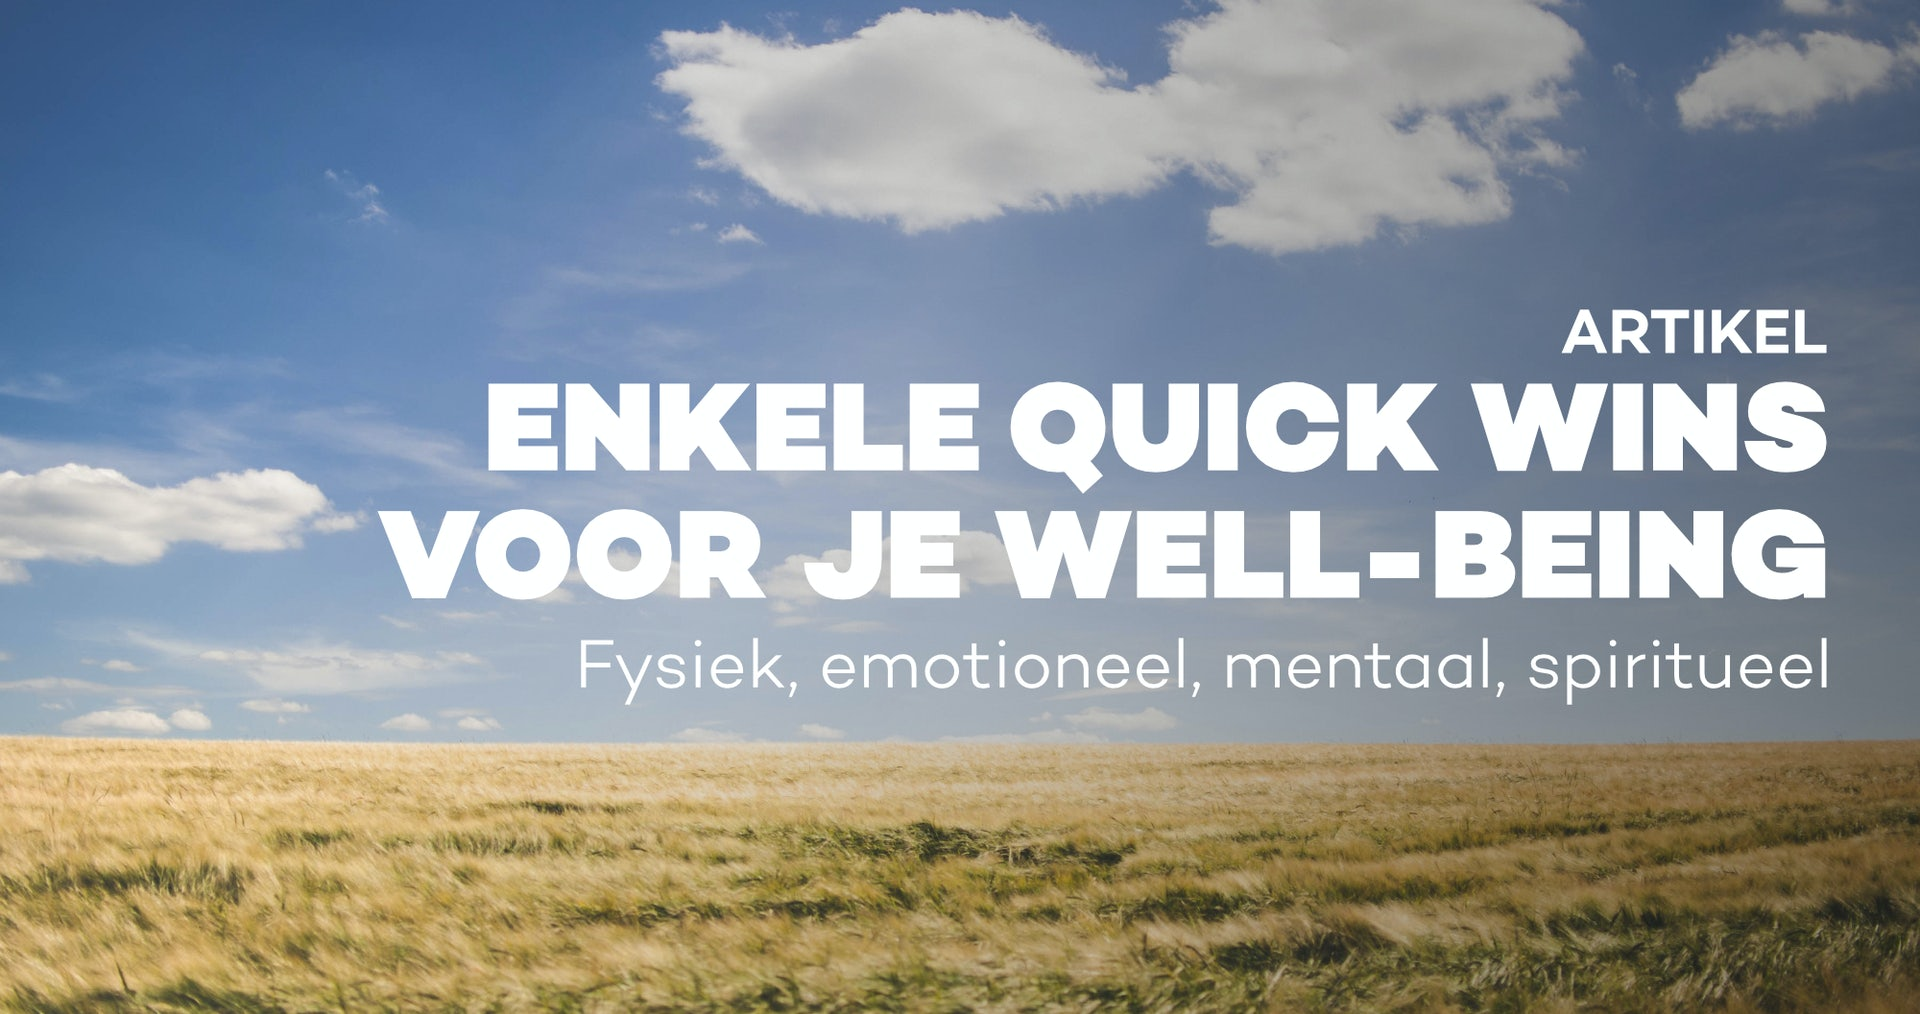 Enkele quick wins voor je well-being